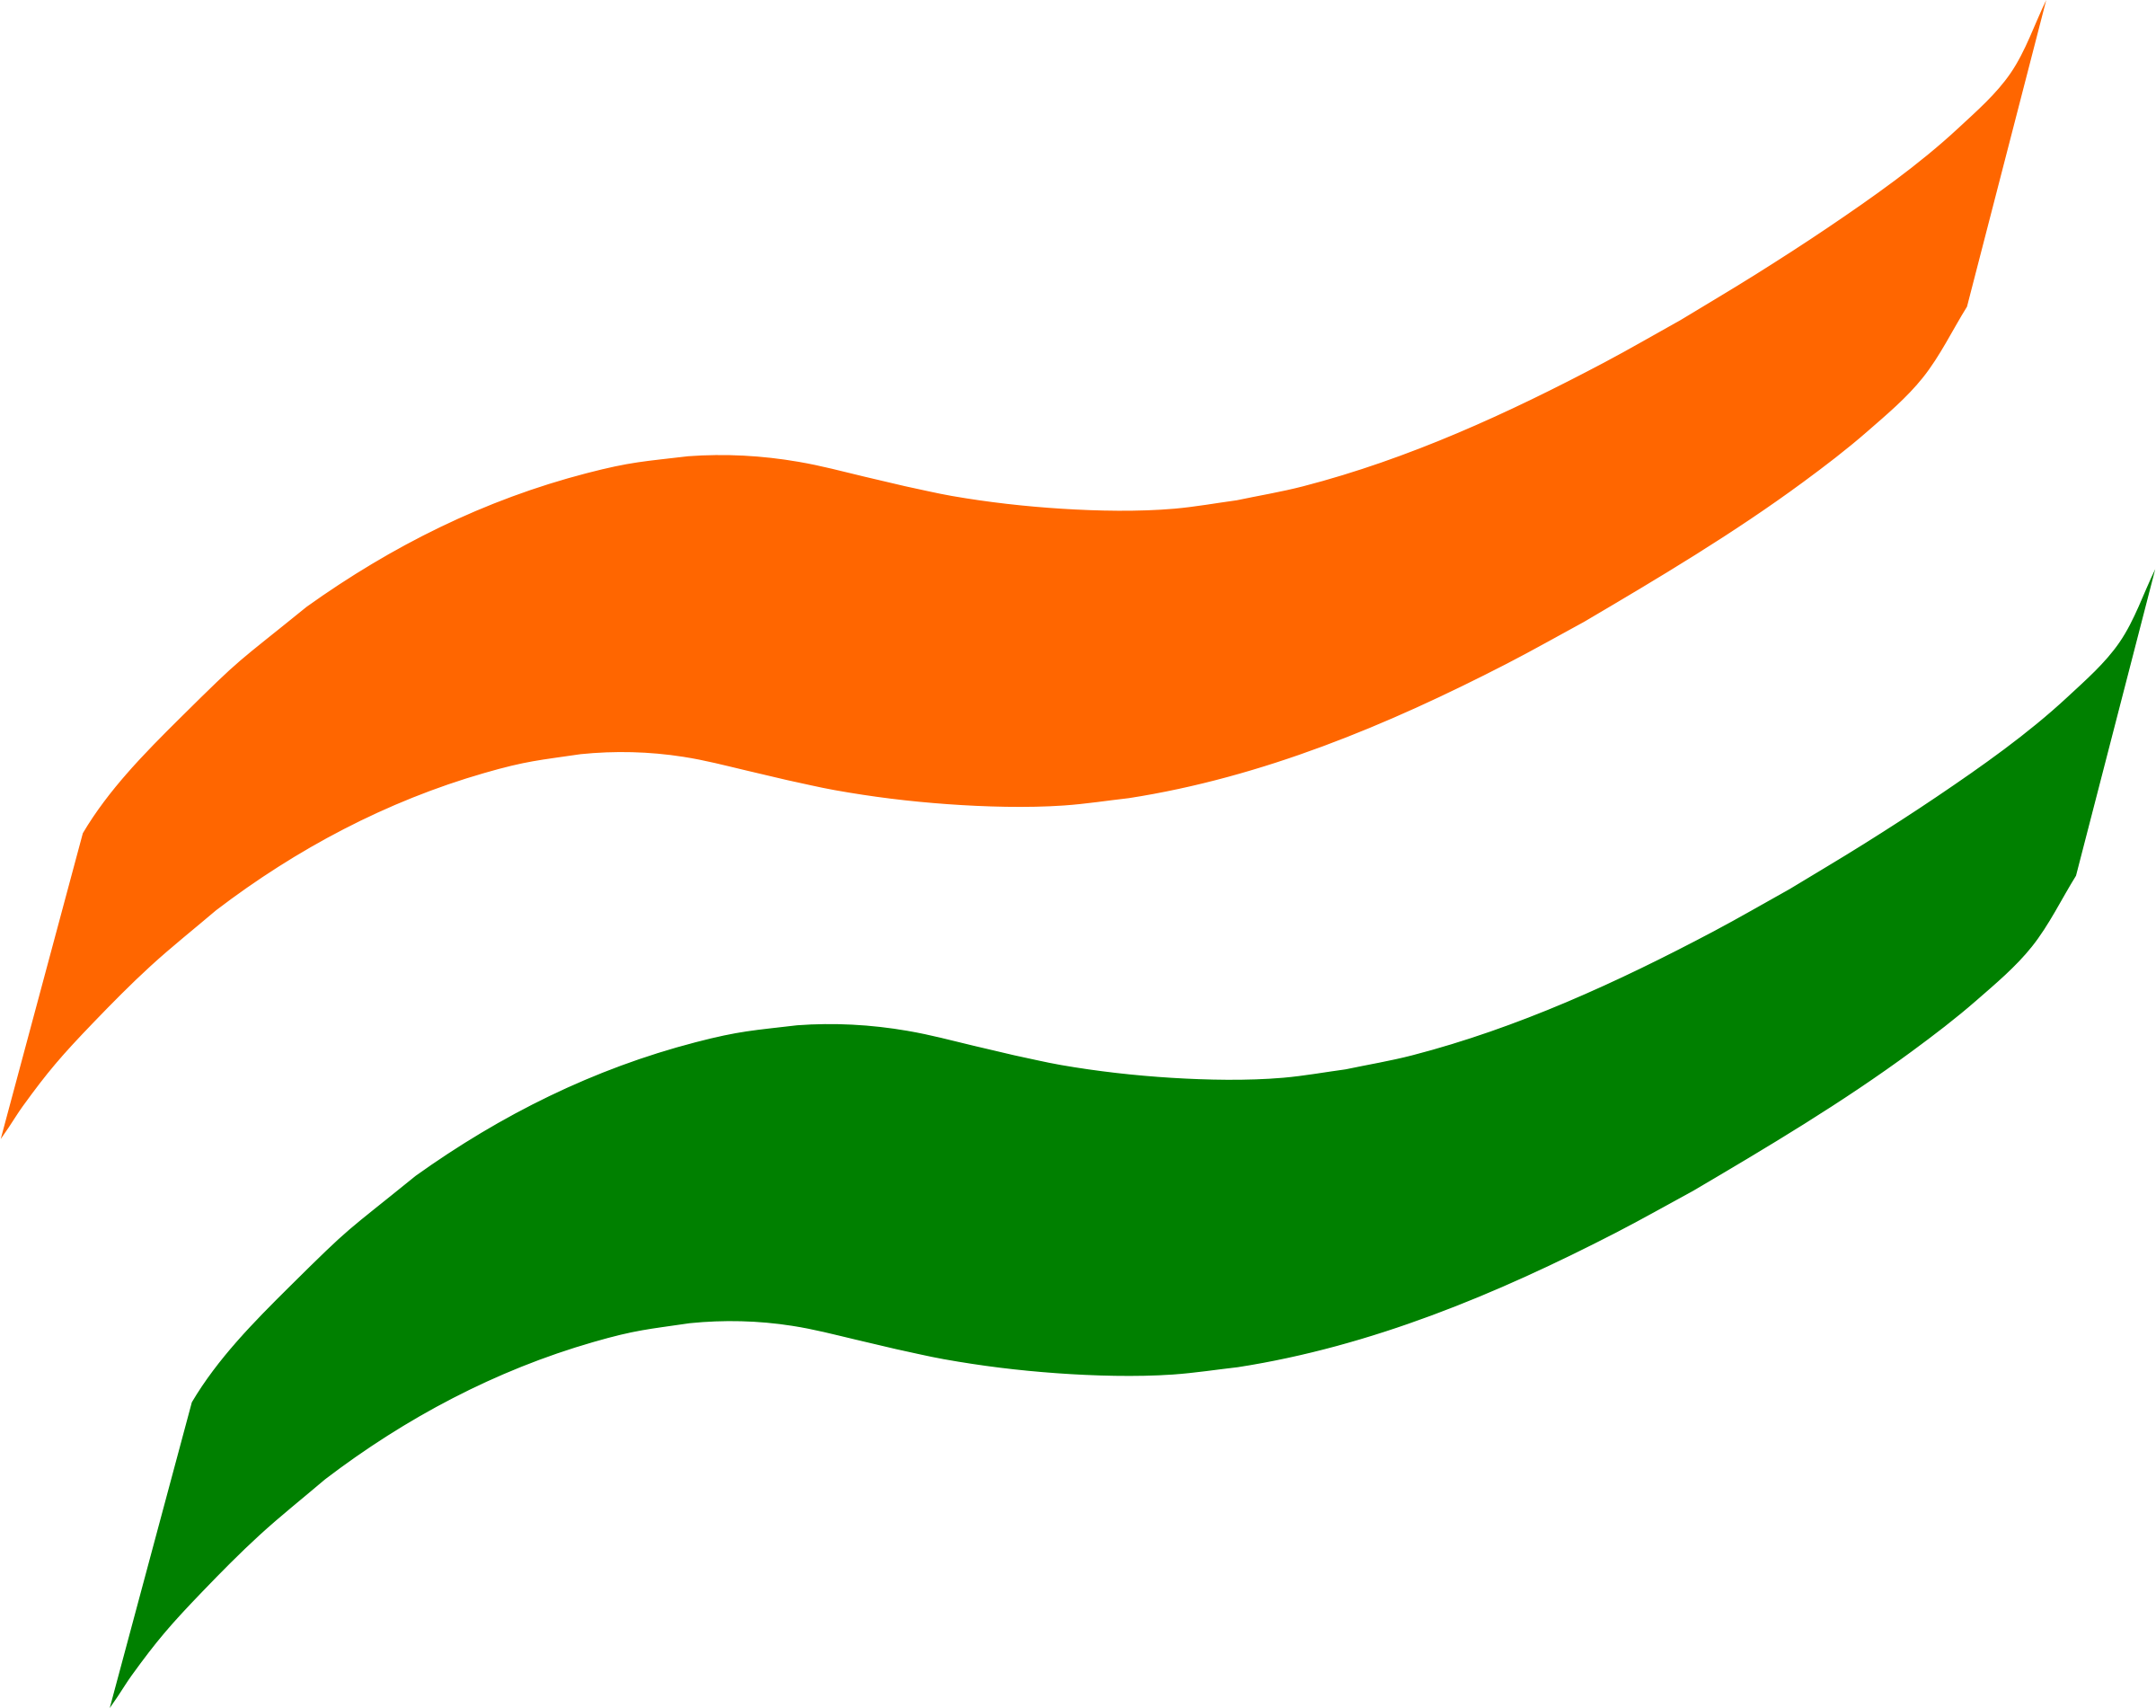 Indian Flag With Different Views: Indian Flag Animated Image